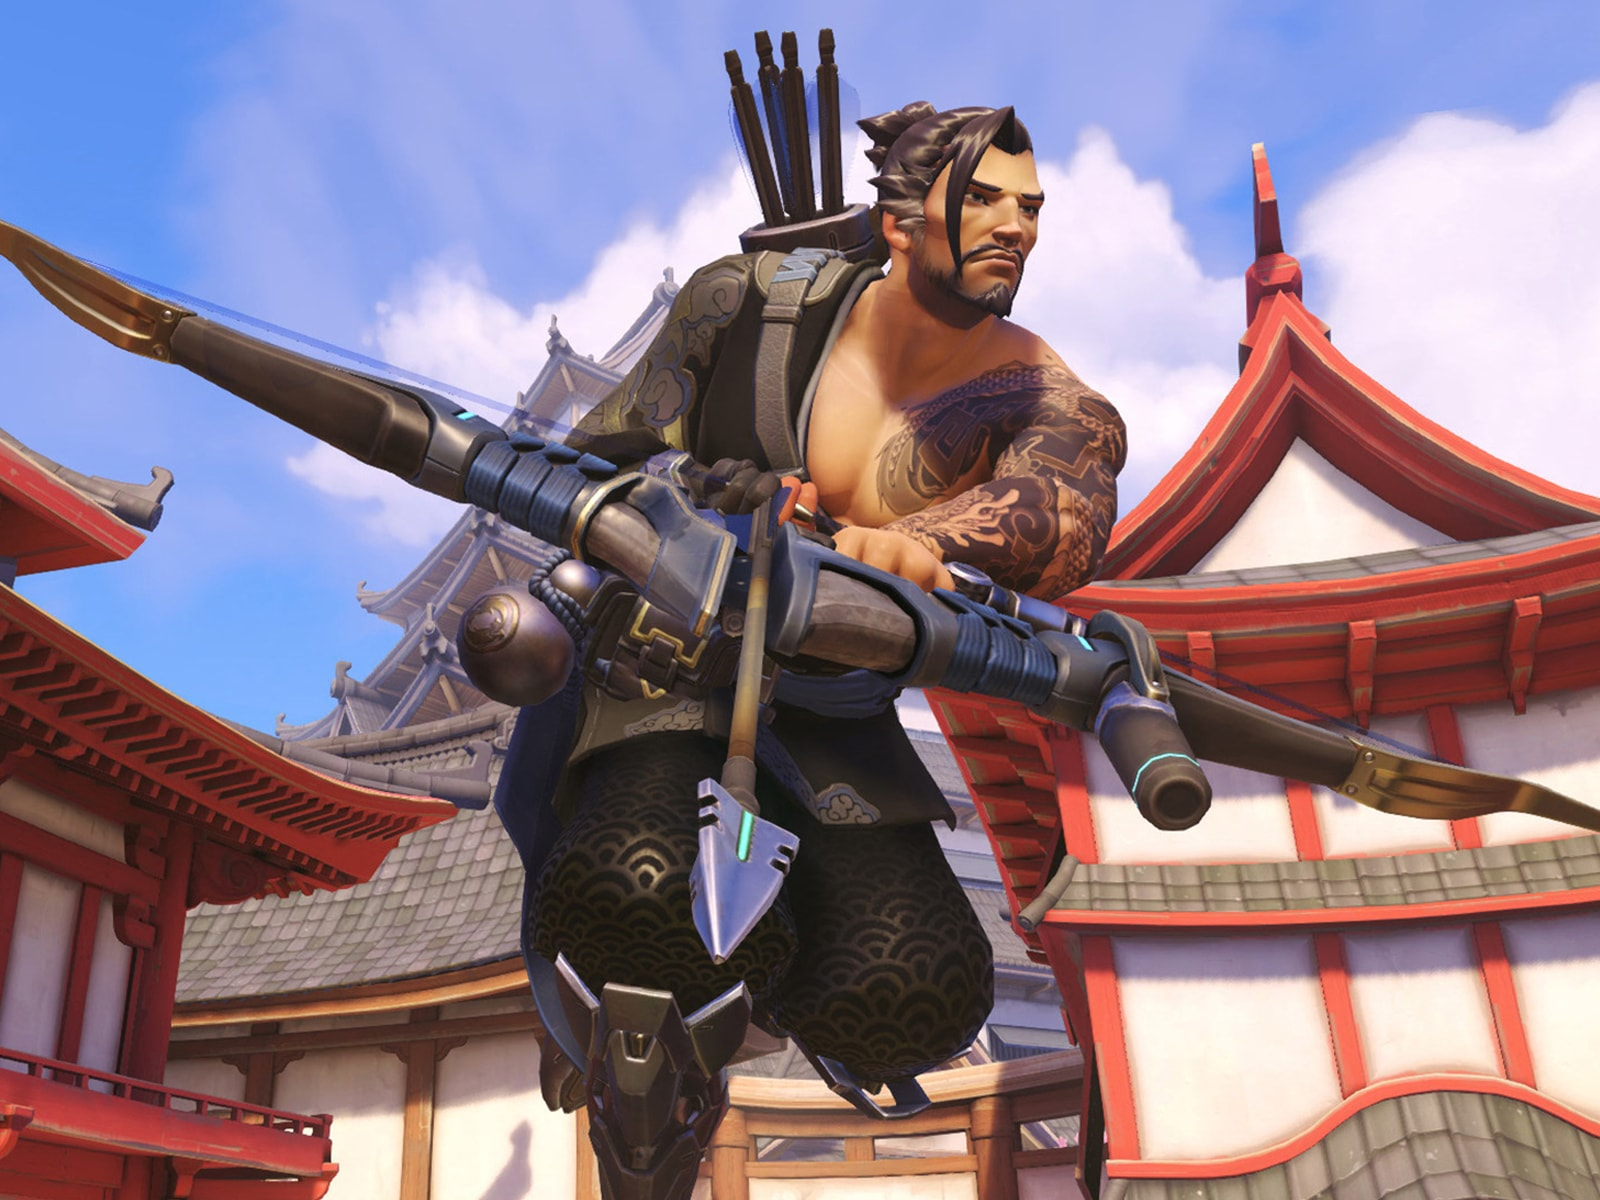 Overwatch character Hanzo wielding his storm bow among several pagodas